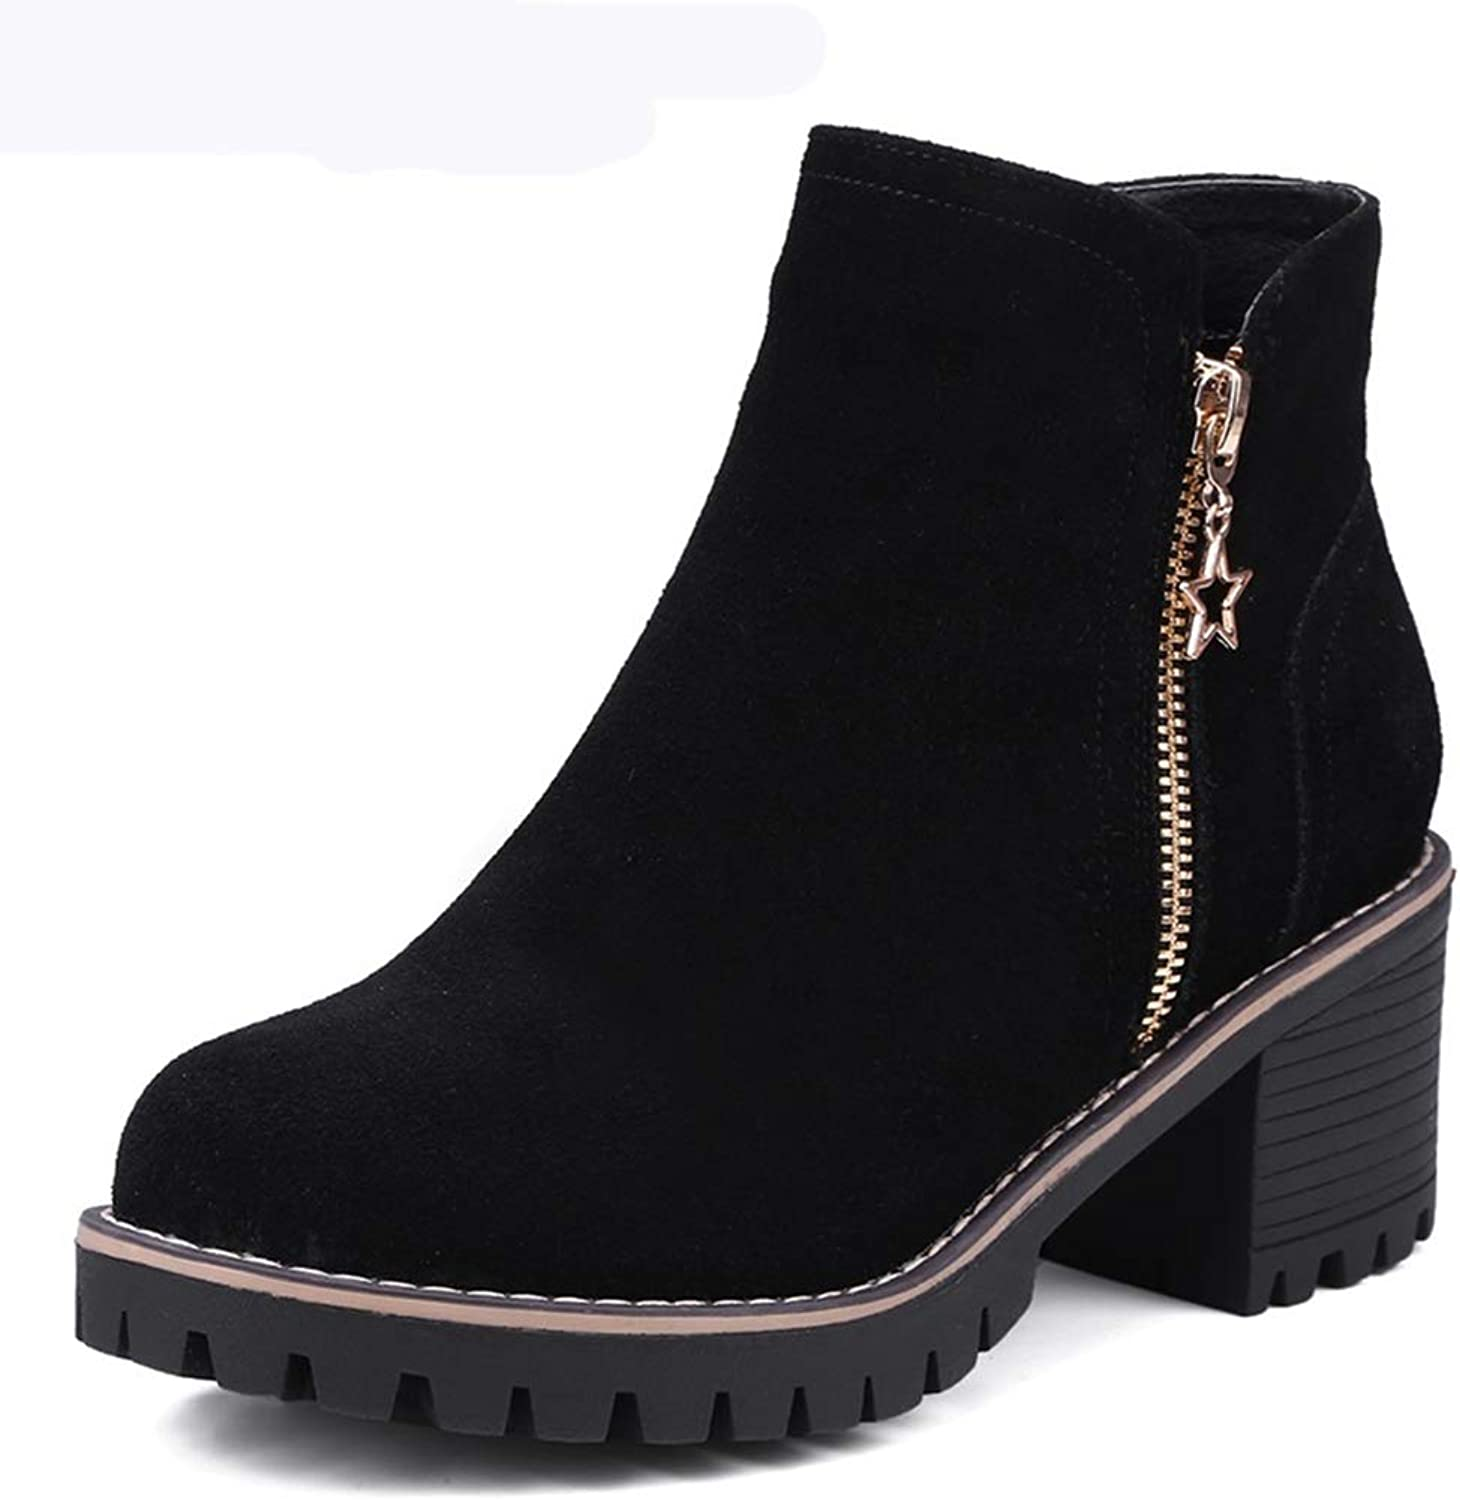 Women's Ankle Boots Concise Casual Suede shoes Women Square High Heel Platform Zipper Ankle Boots